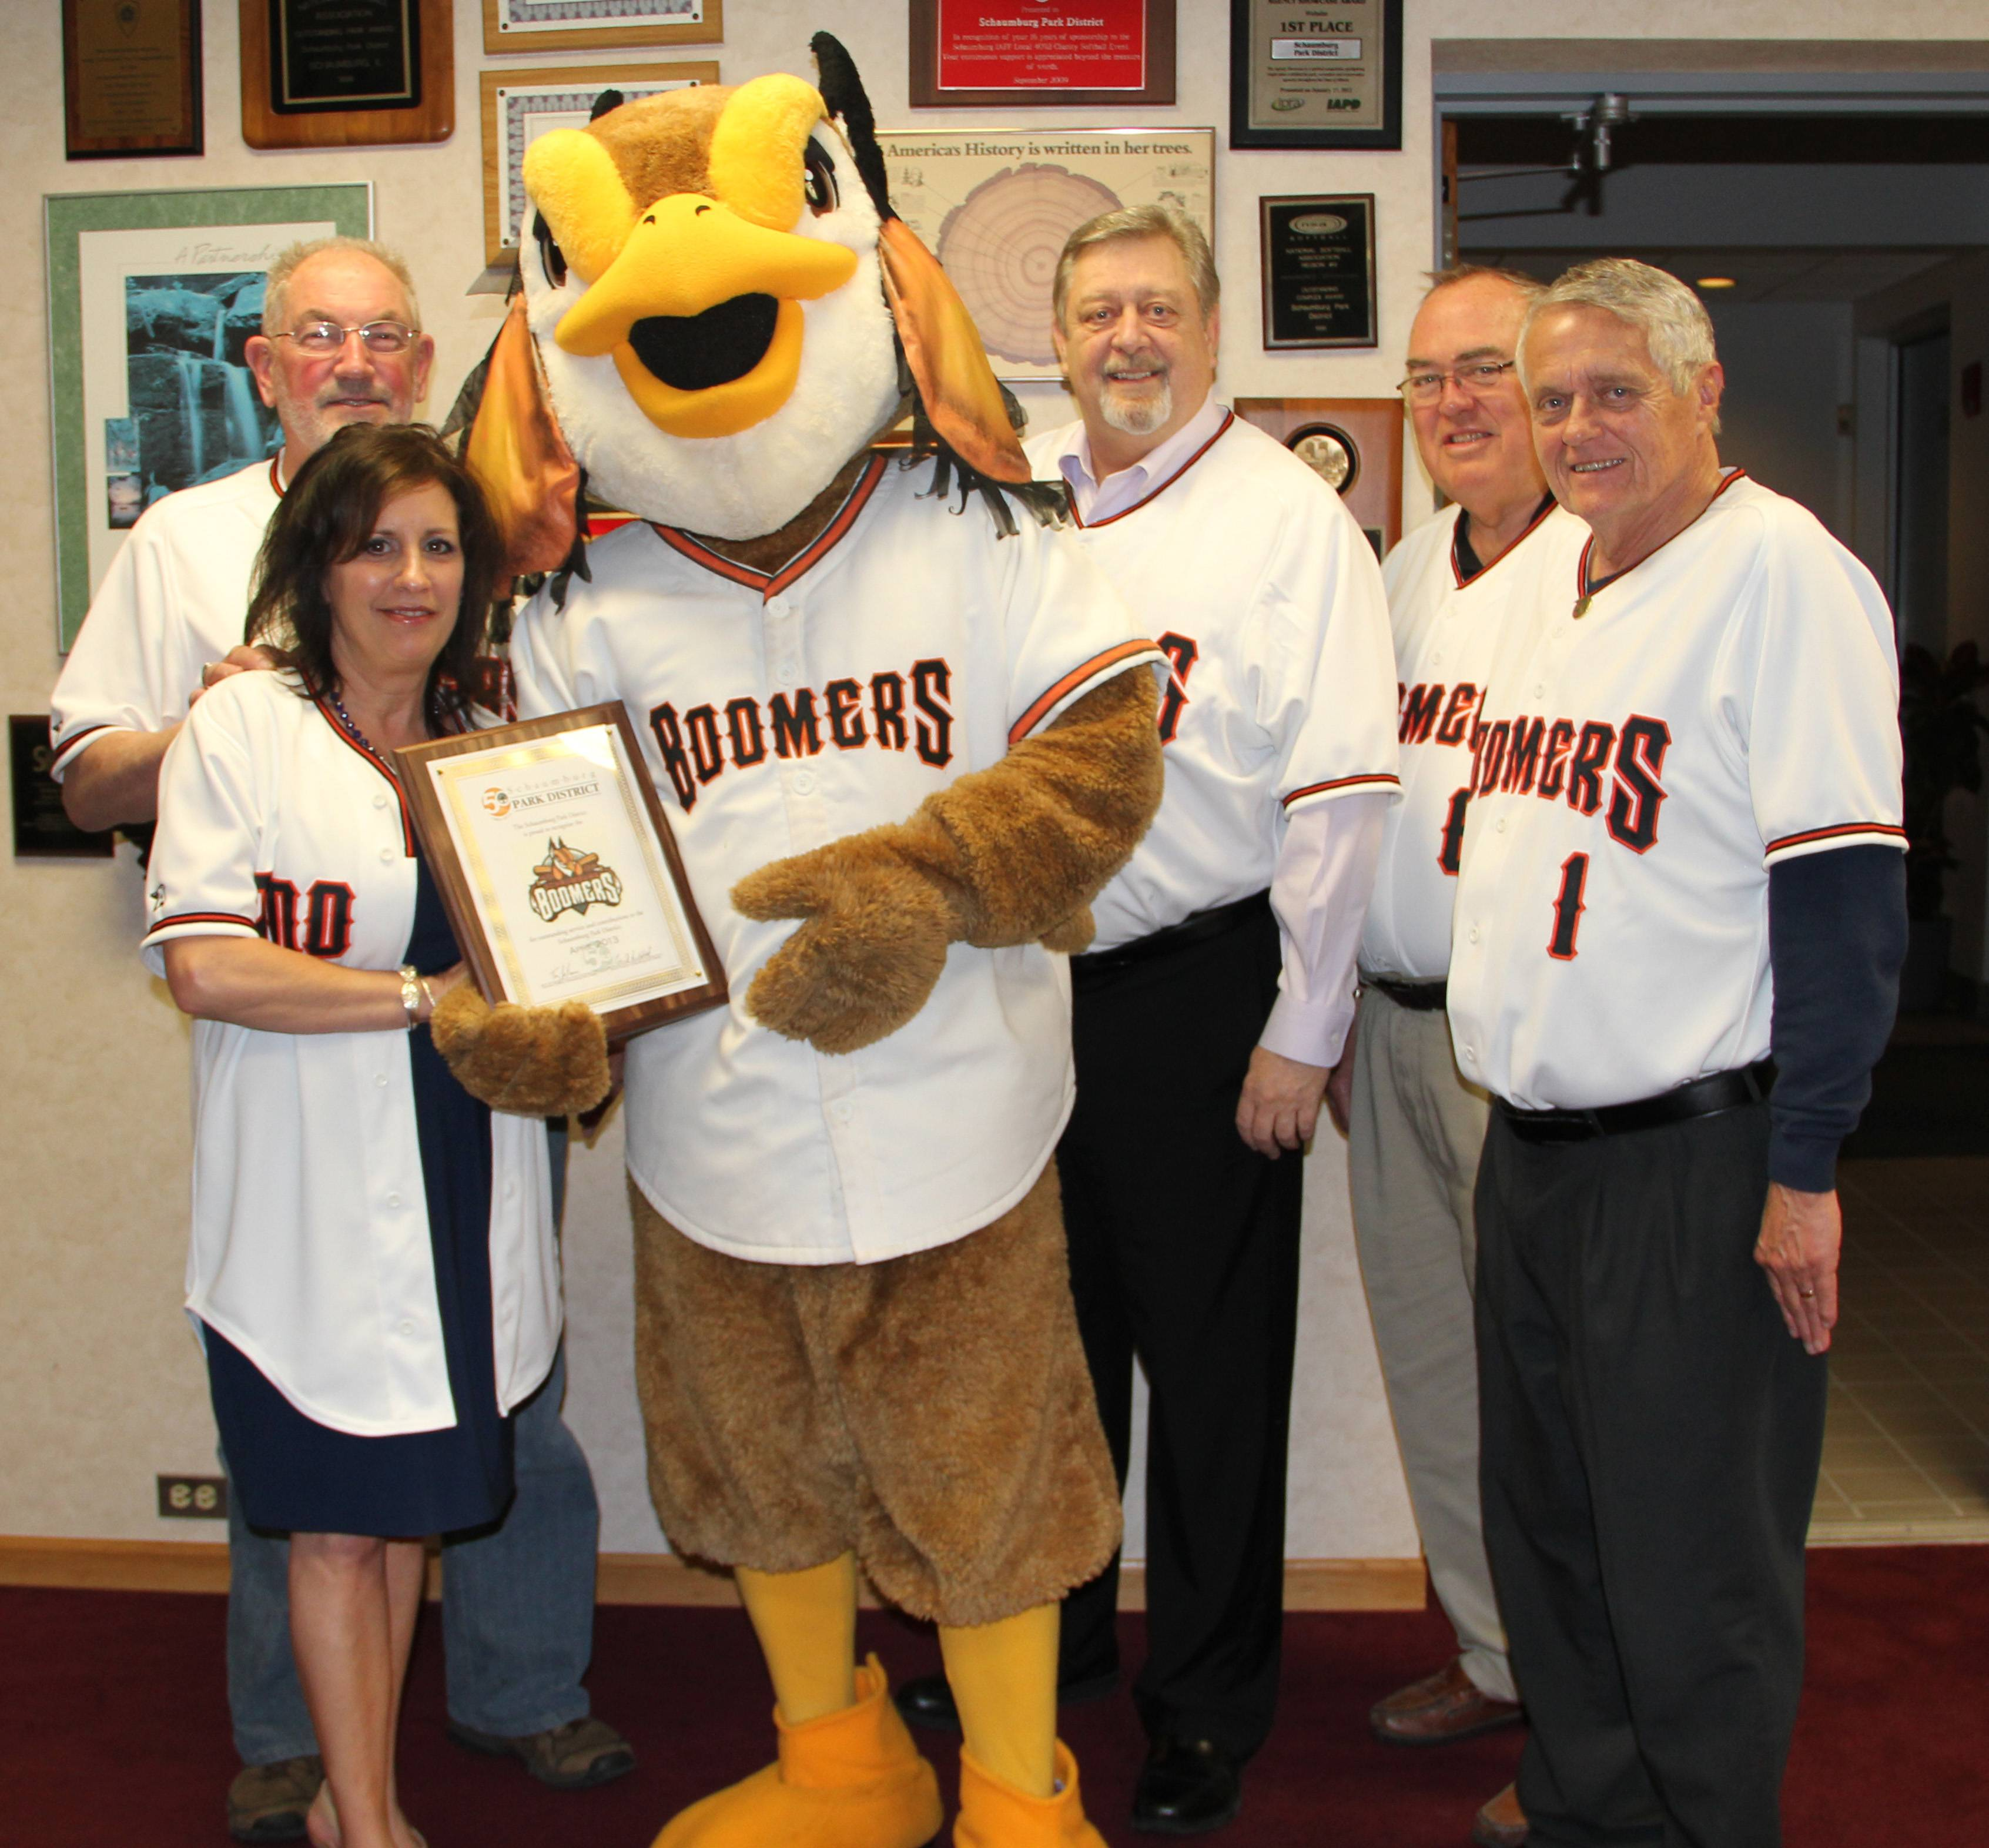 Celebrating the Schaumburg Boomers' partnership with the Schaumburg Park District are (l to r) Park Board President Bob Schmidt, Commissioner Sharon DiMaria, Coop the Boomers Mascot and Commissioners Mike Daniels, George Longmeyer and Dave Johnson.